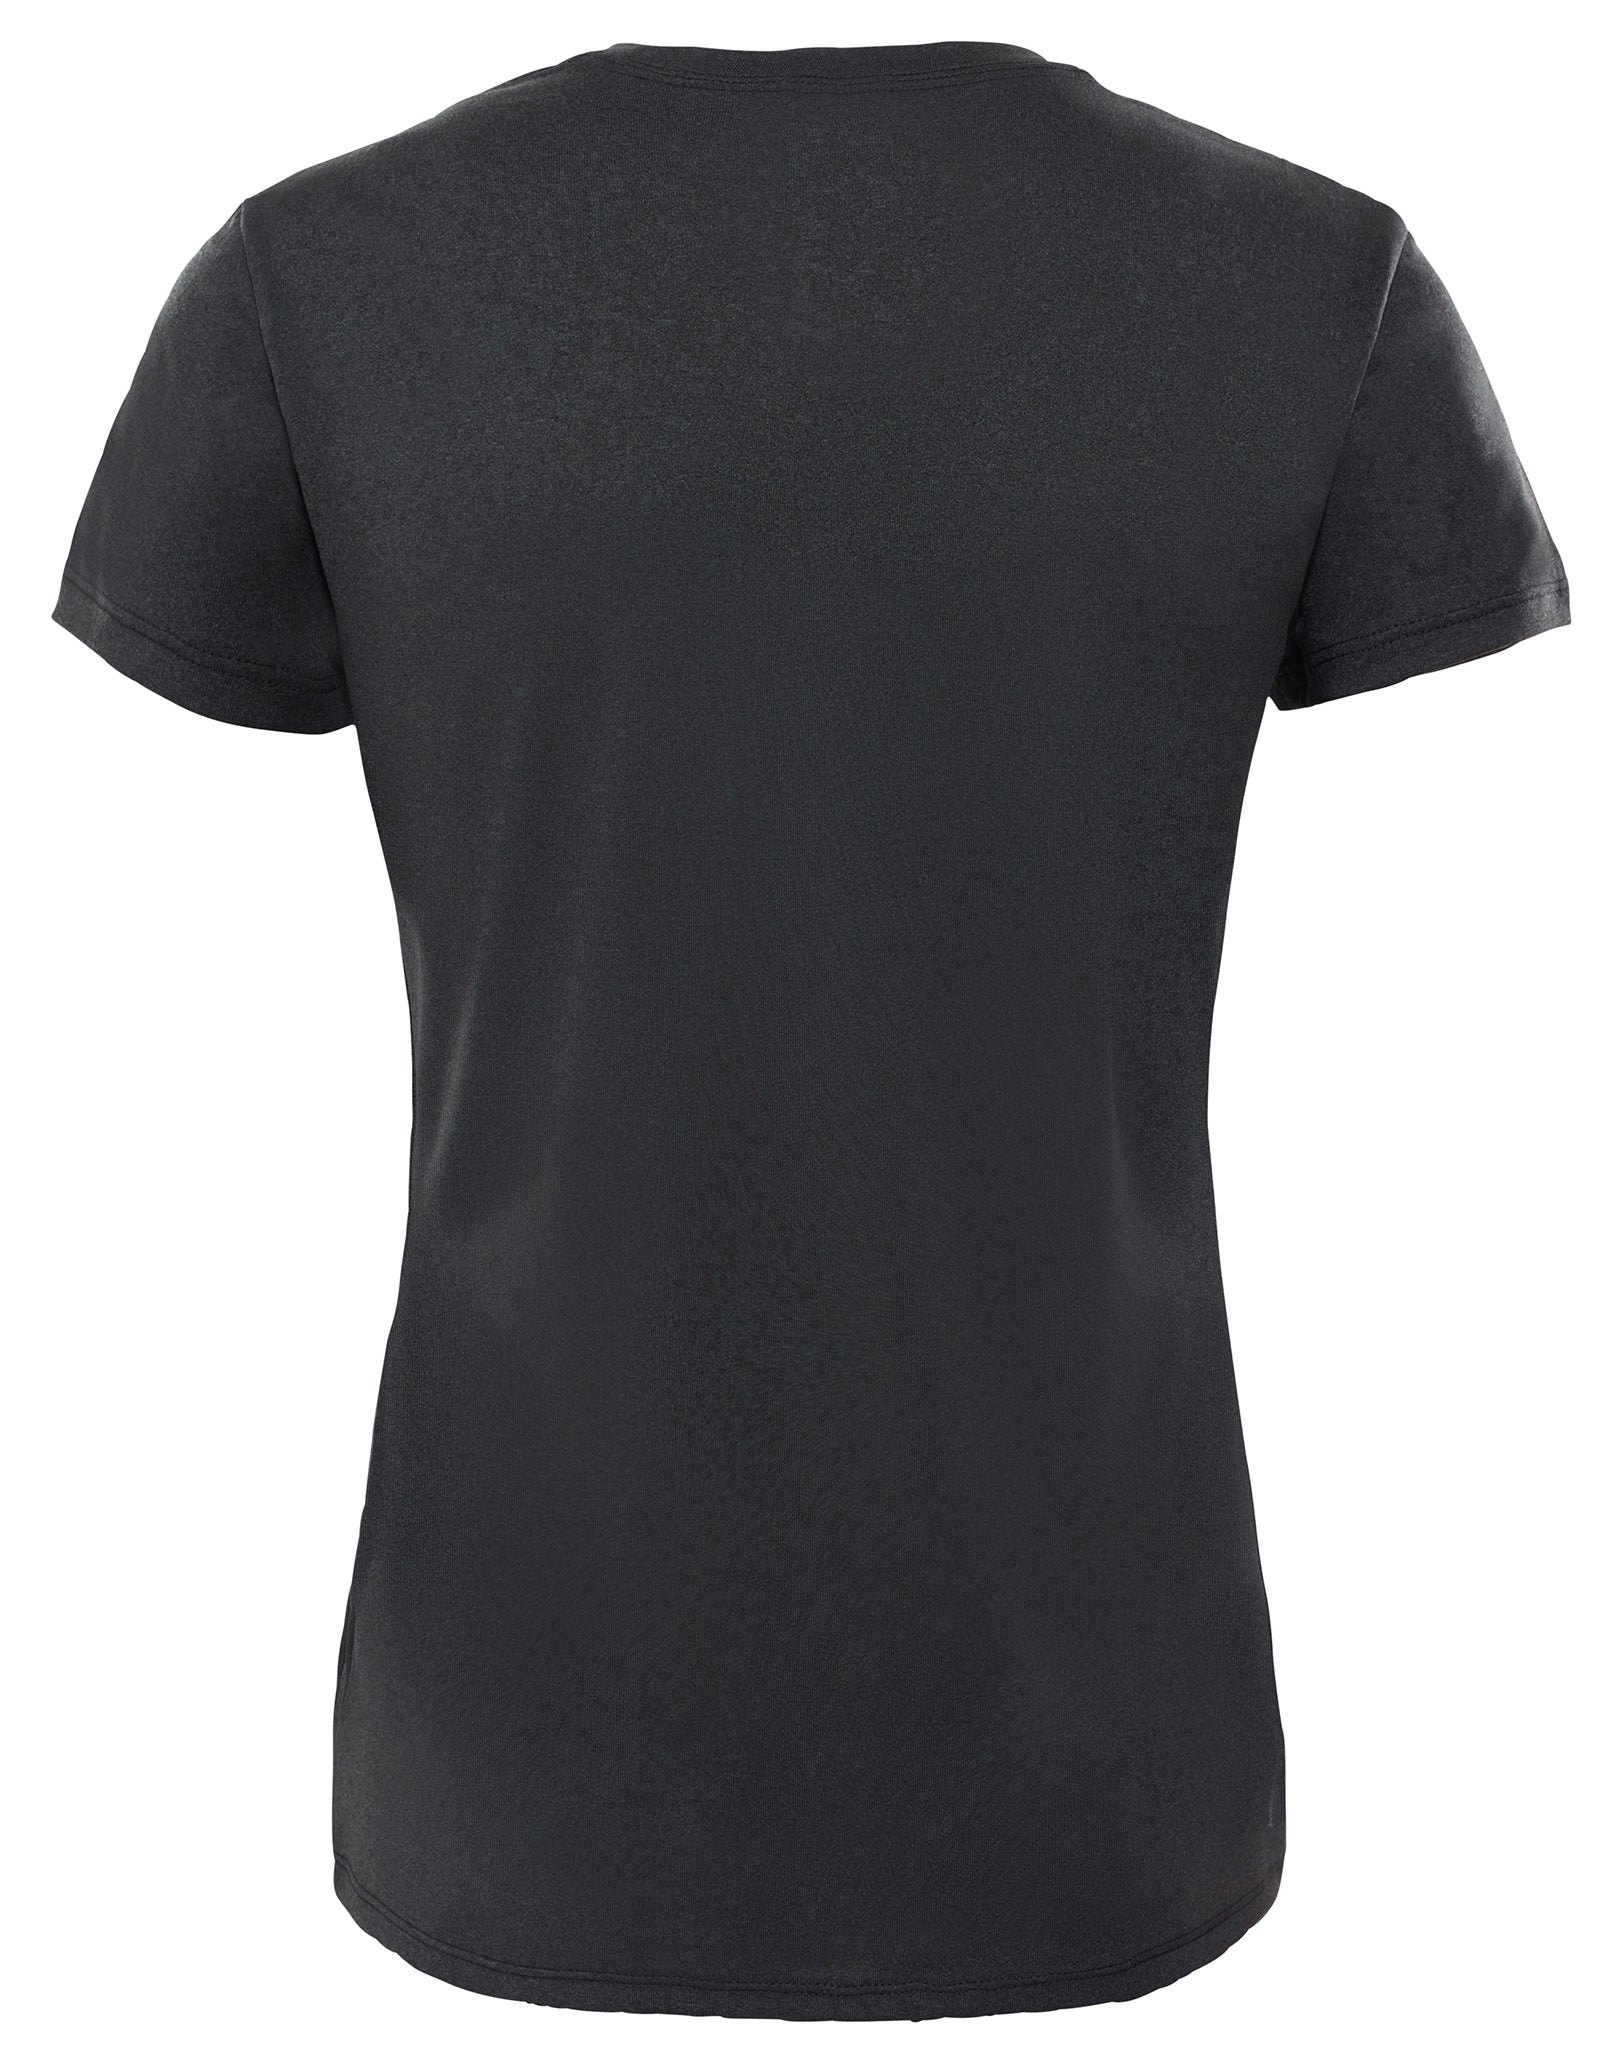 88705fbe4d8d The North Face Womens Reaxion Amp Crew T Shirt - TNF Black Heather ...